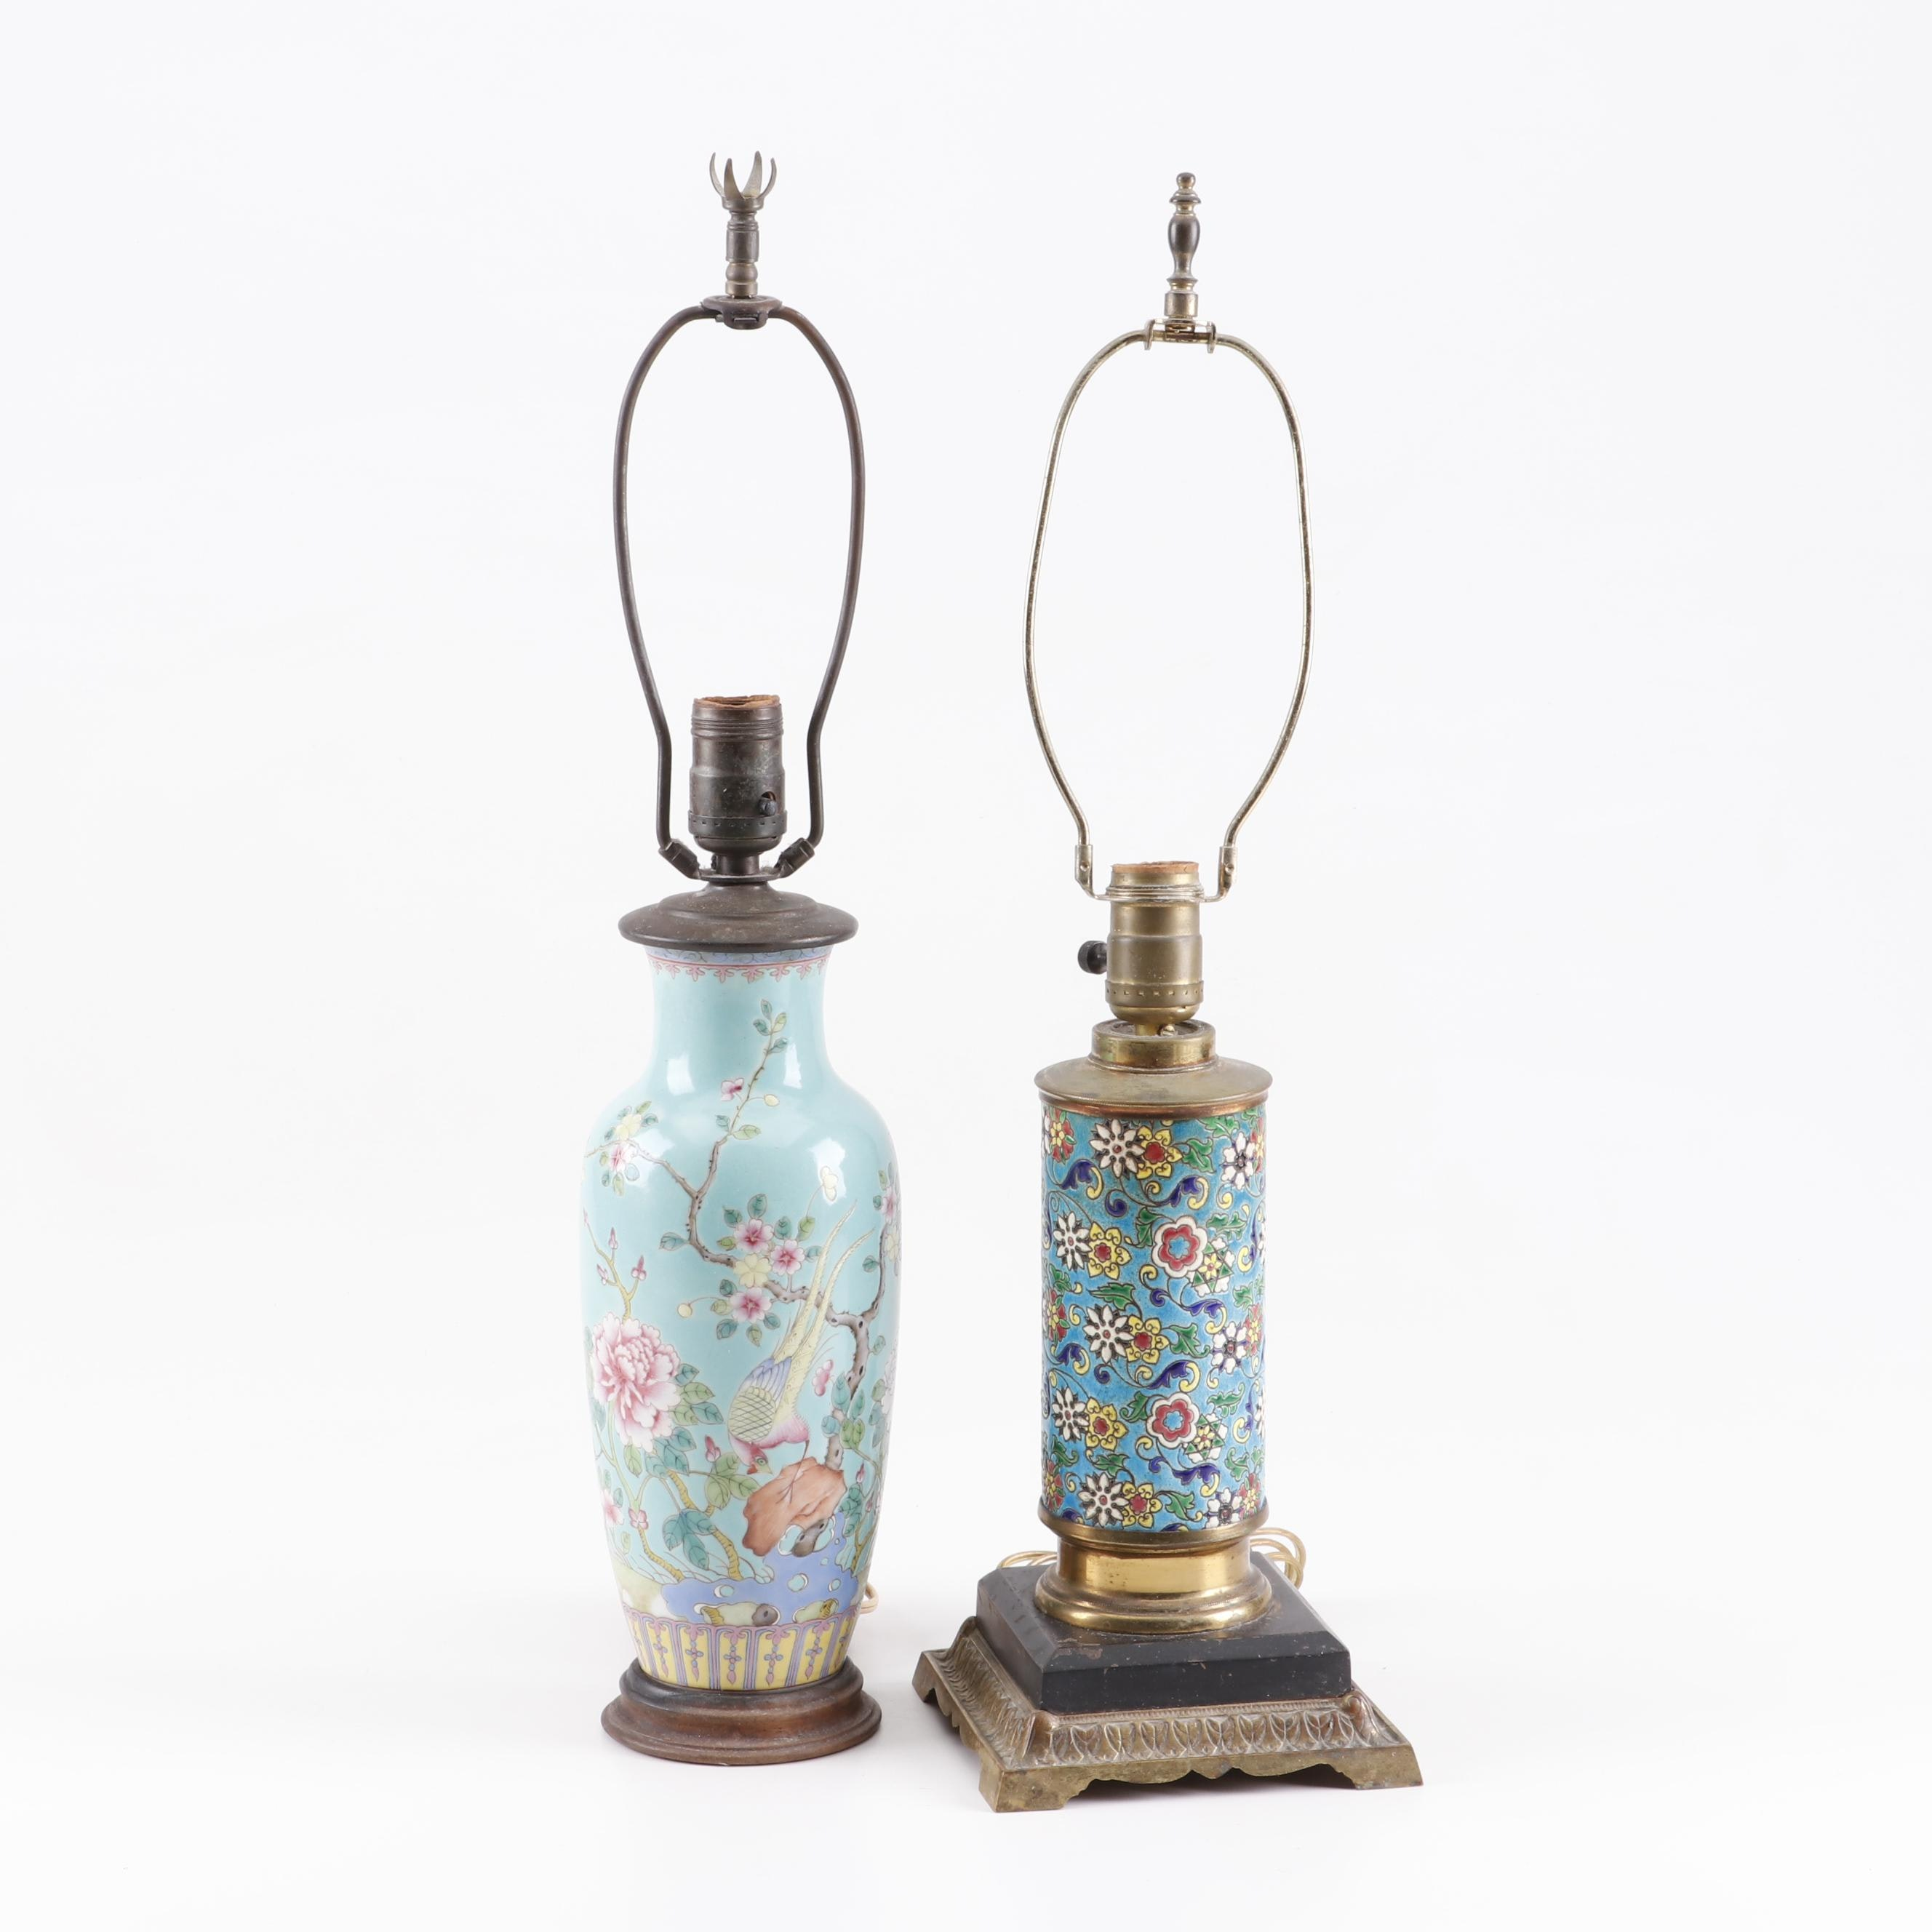 Chinoiserie Ceramic and Enameled Ceramic Table Lamps